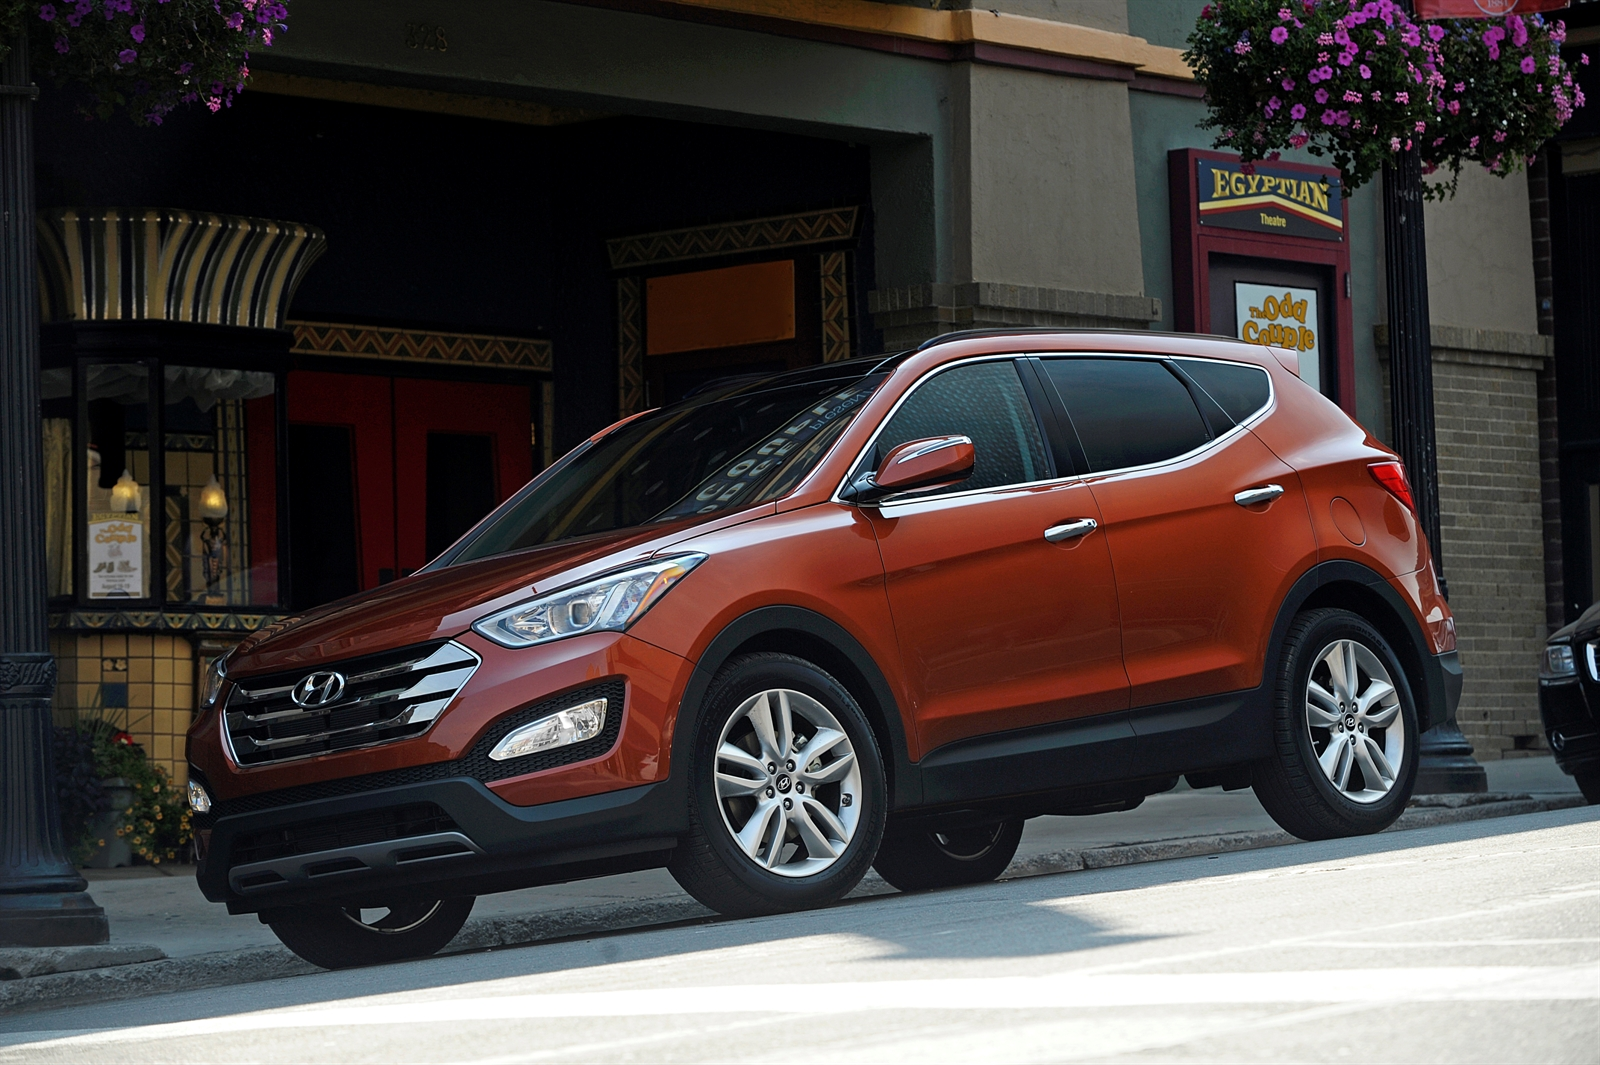 2014 hyundai santa fe review. Black Bedroom Furniture Sets. Home Design Ideas